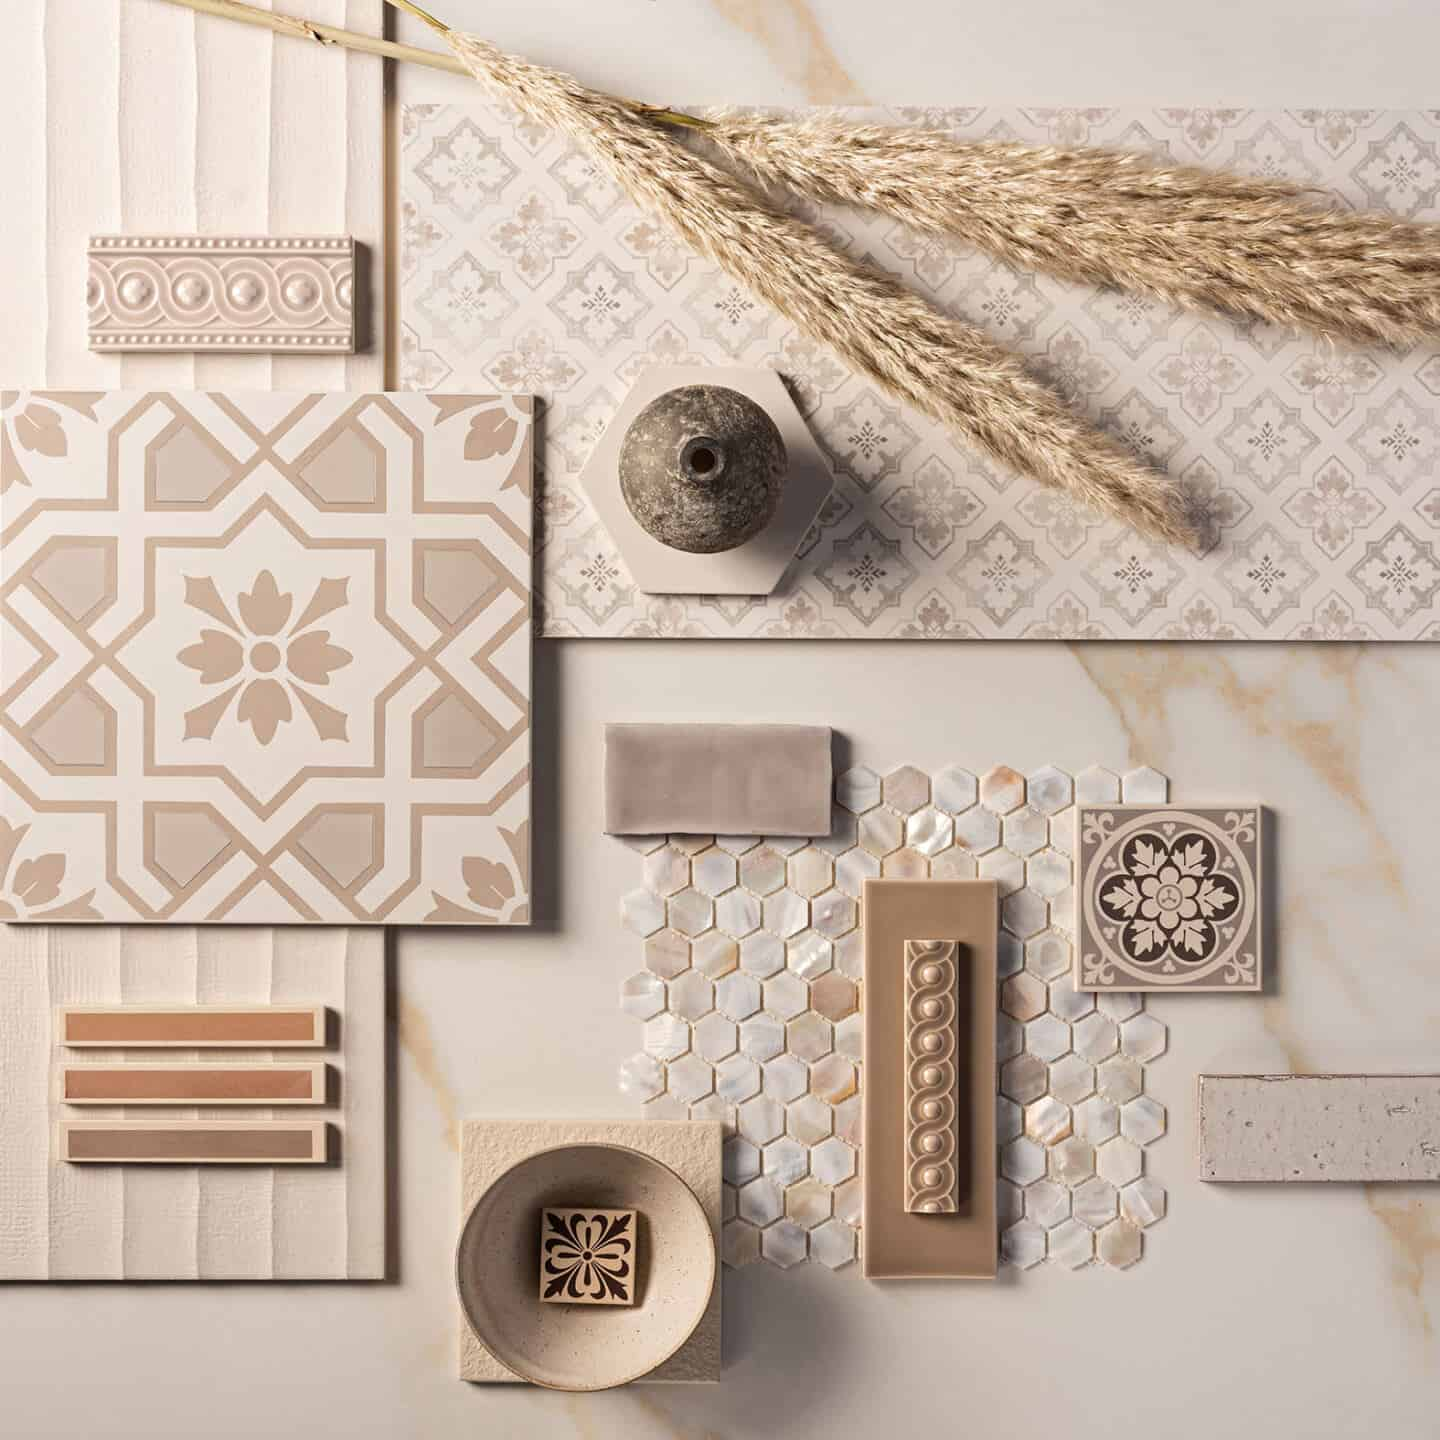 Interiors Trends for 2021- Sanctuary - Original Style Mood Board showing beige tiles, a small textured vase and some pampas grass